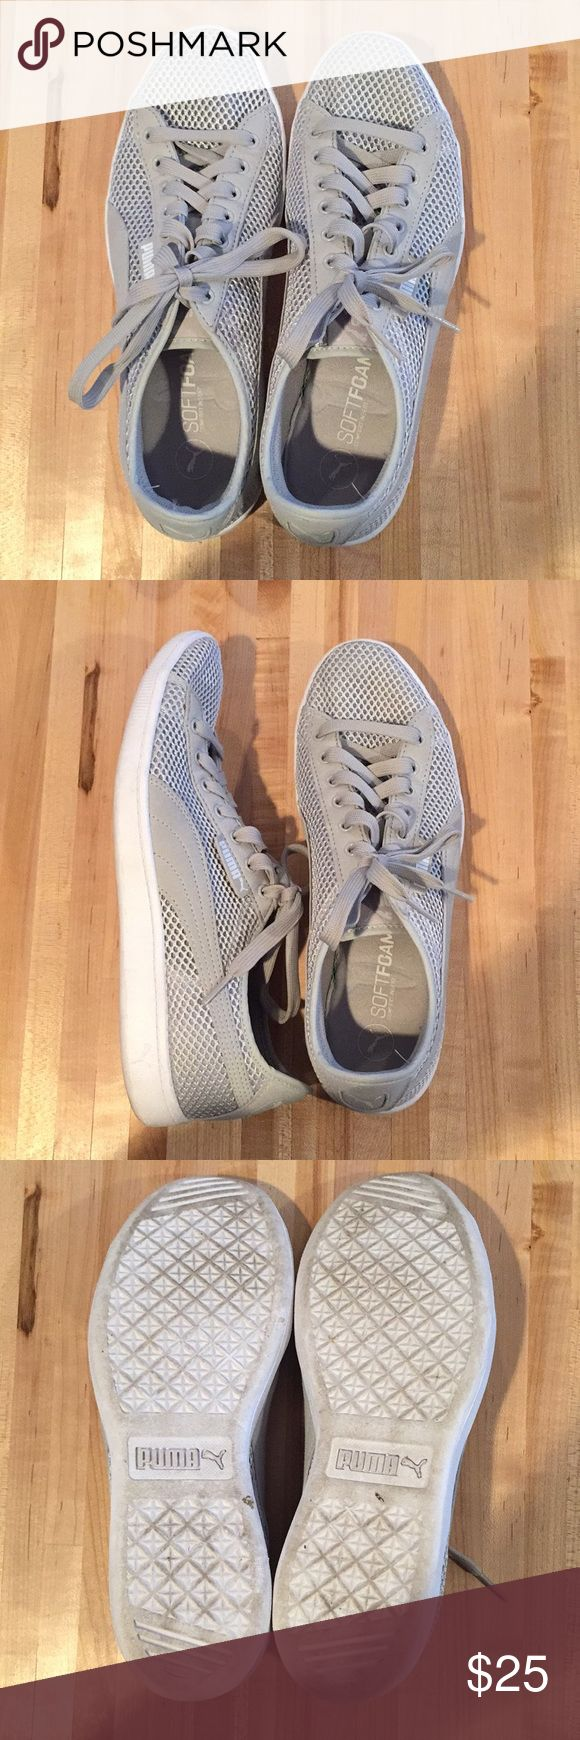 Puma - gray casual tennis shoes Gray Puma tennis shoes Cute with every outfit Soft foam insoles for great comfort Puma Shoes Sneakers